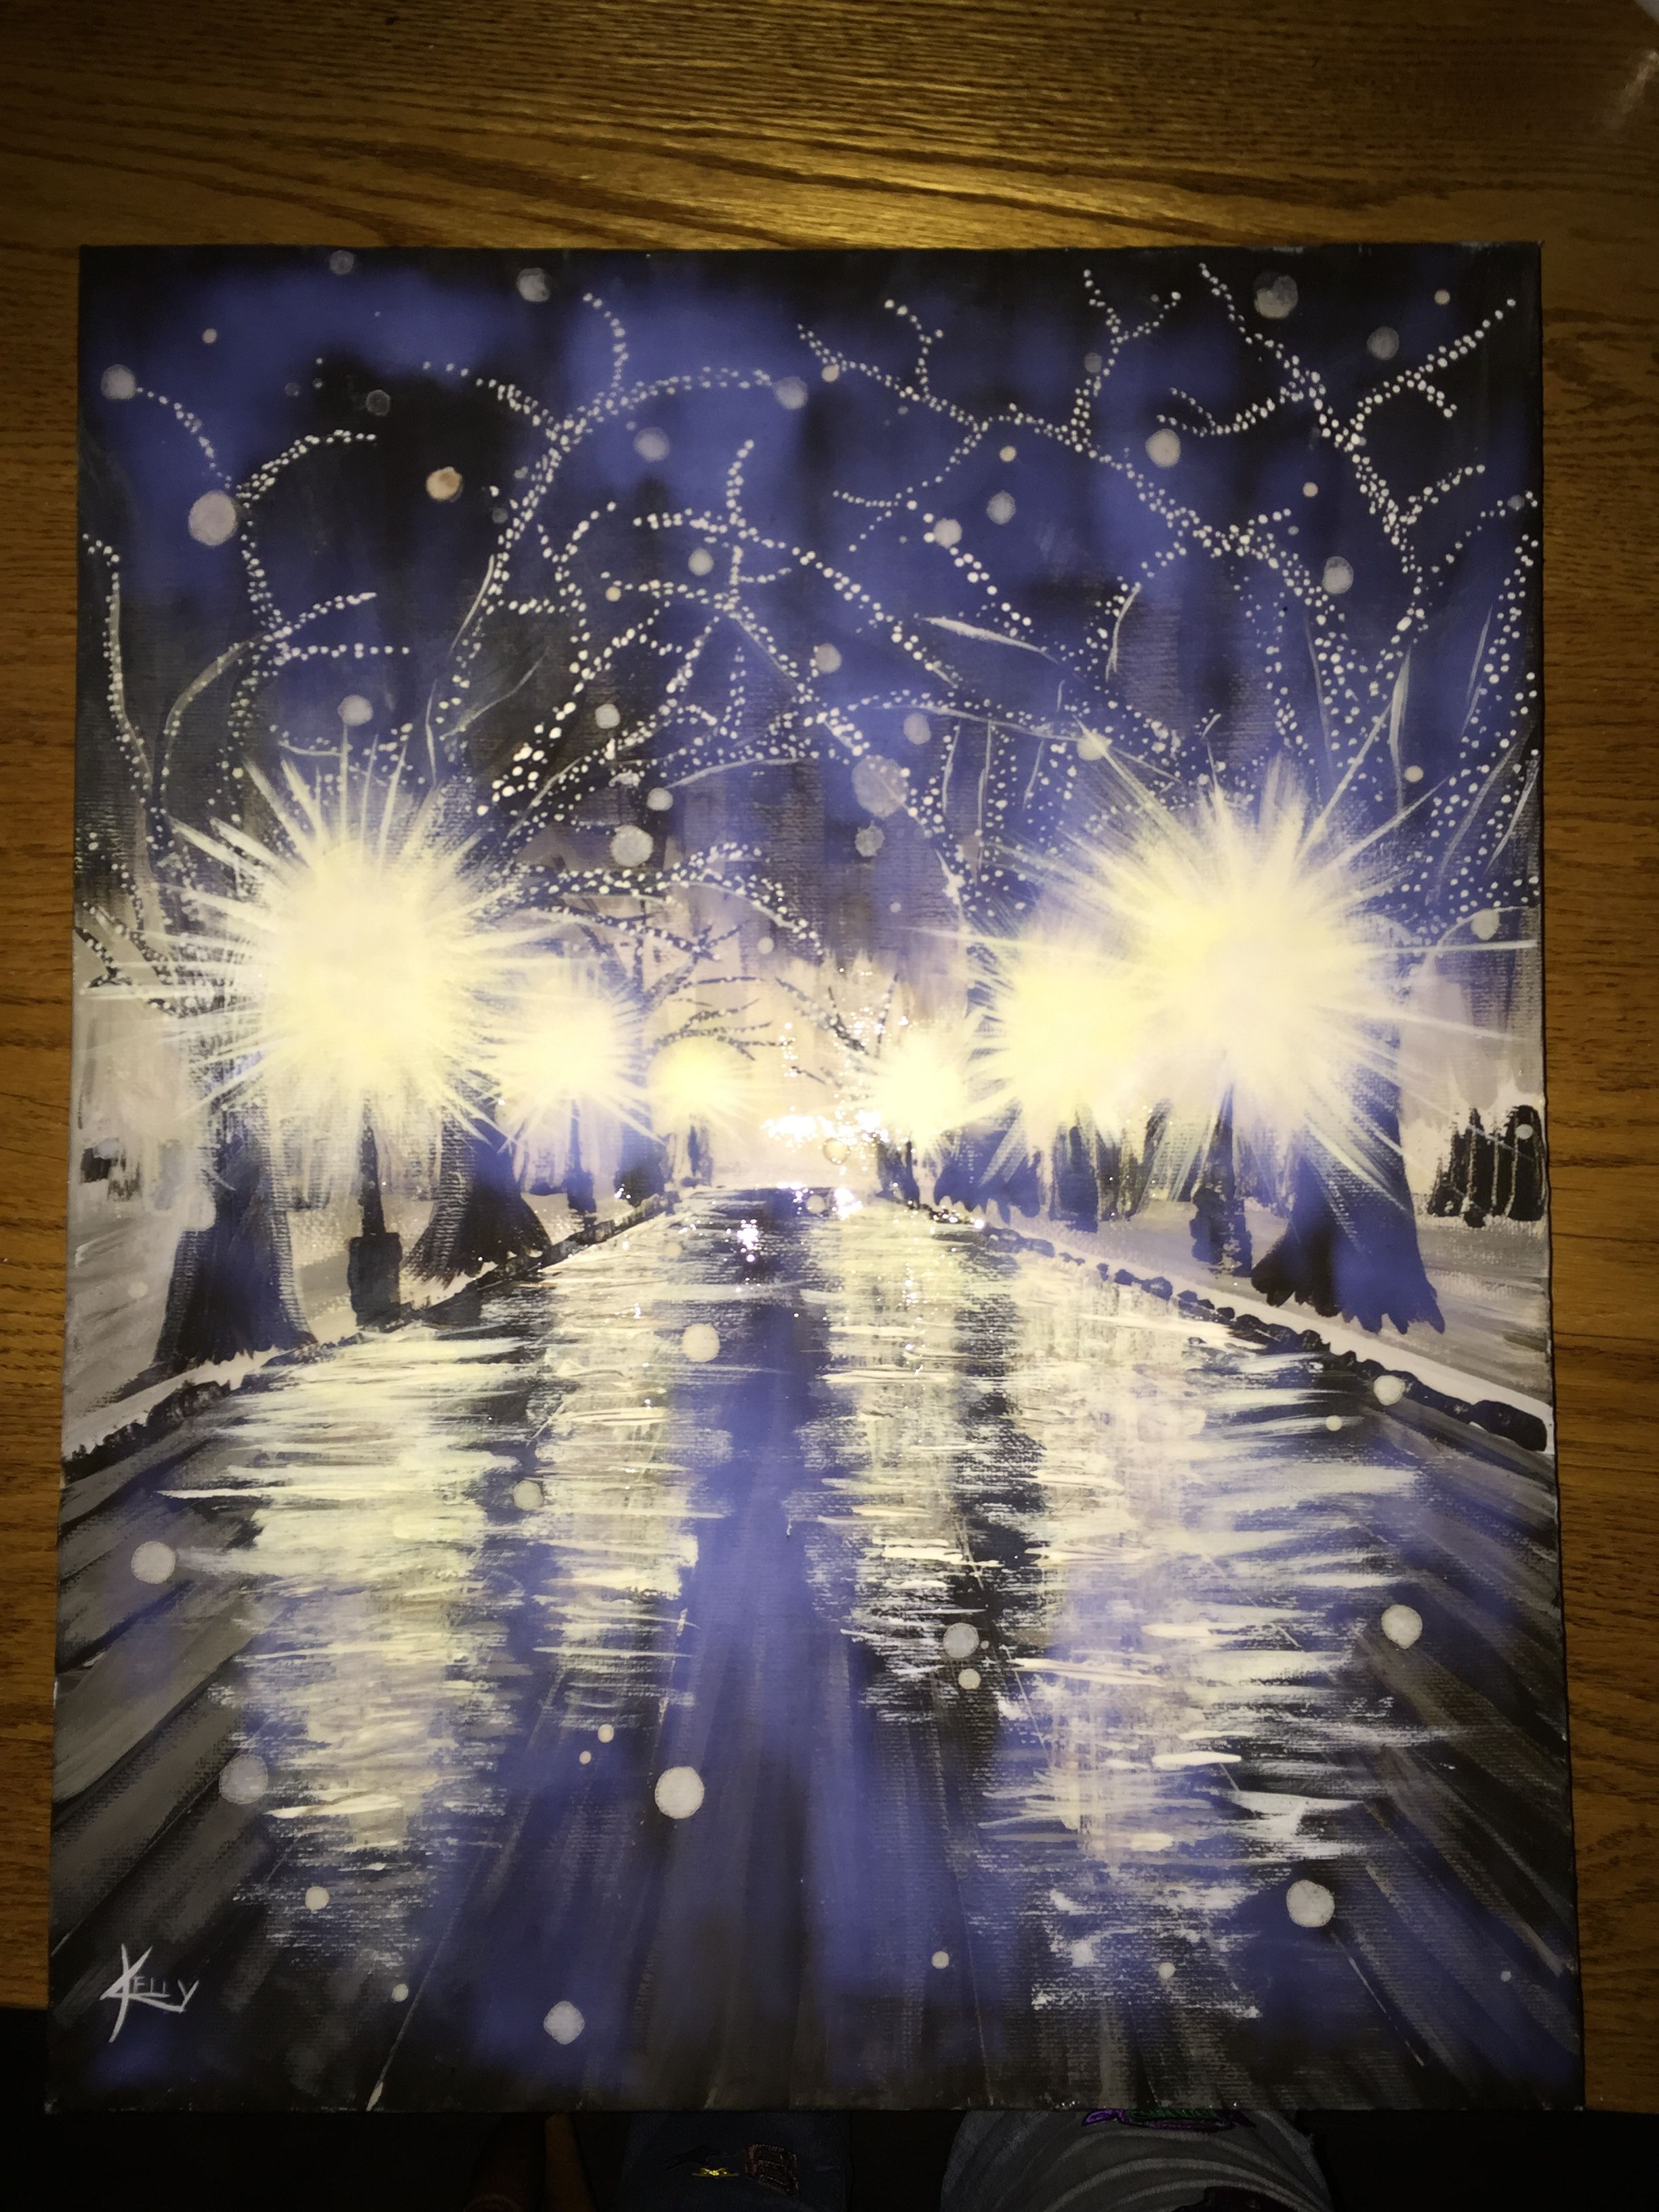 Acrylic painting. Snow at night. See more at RTbykelly on facebook.